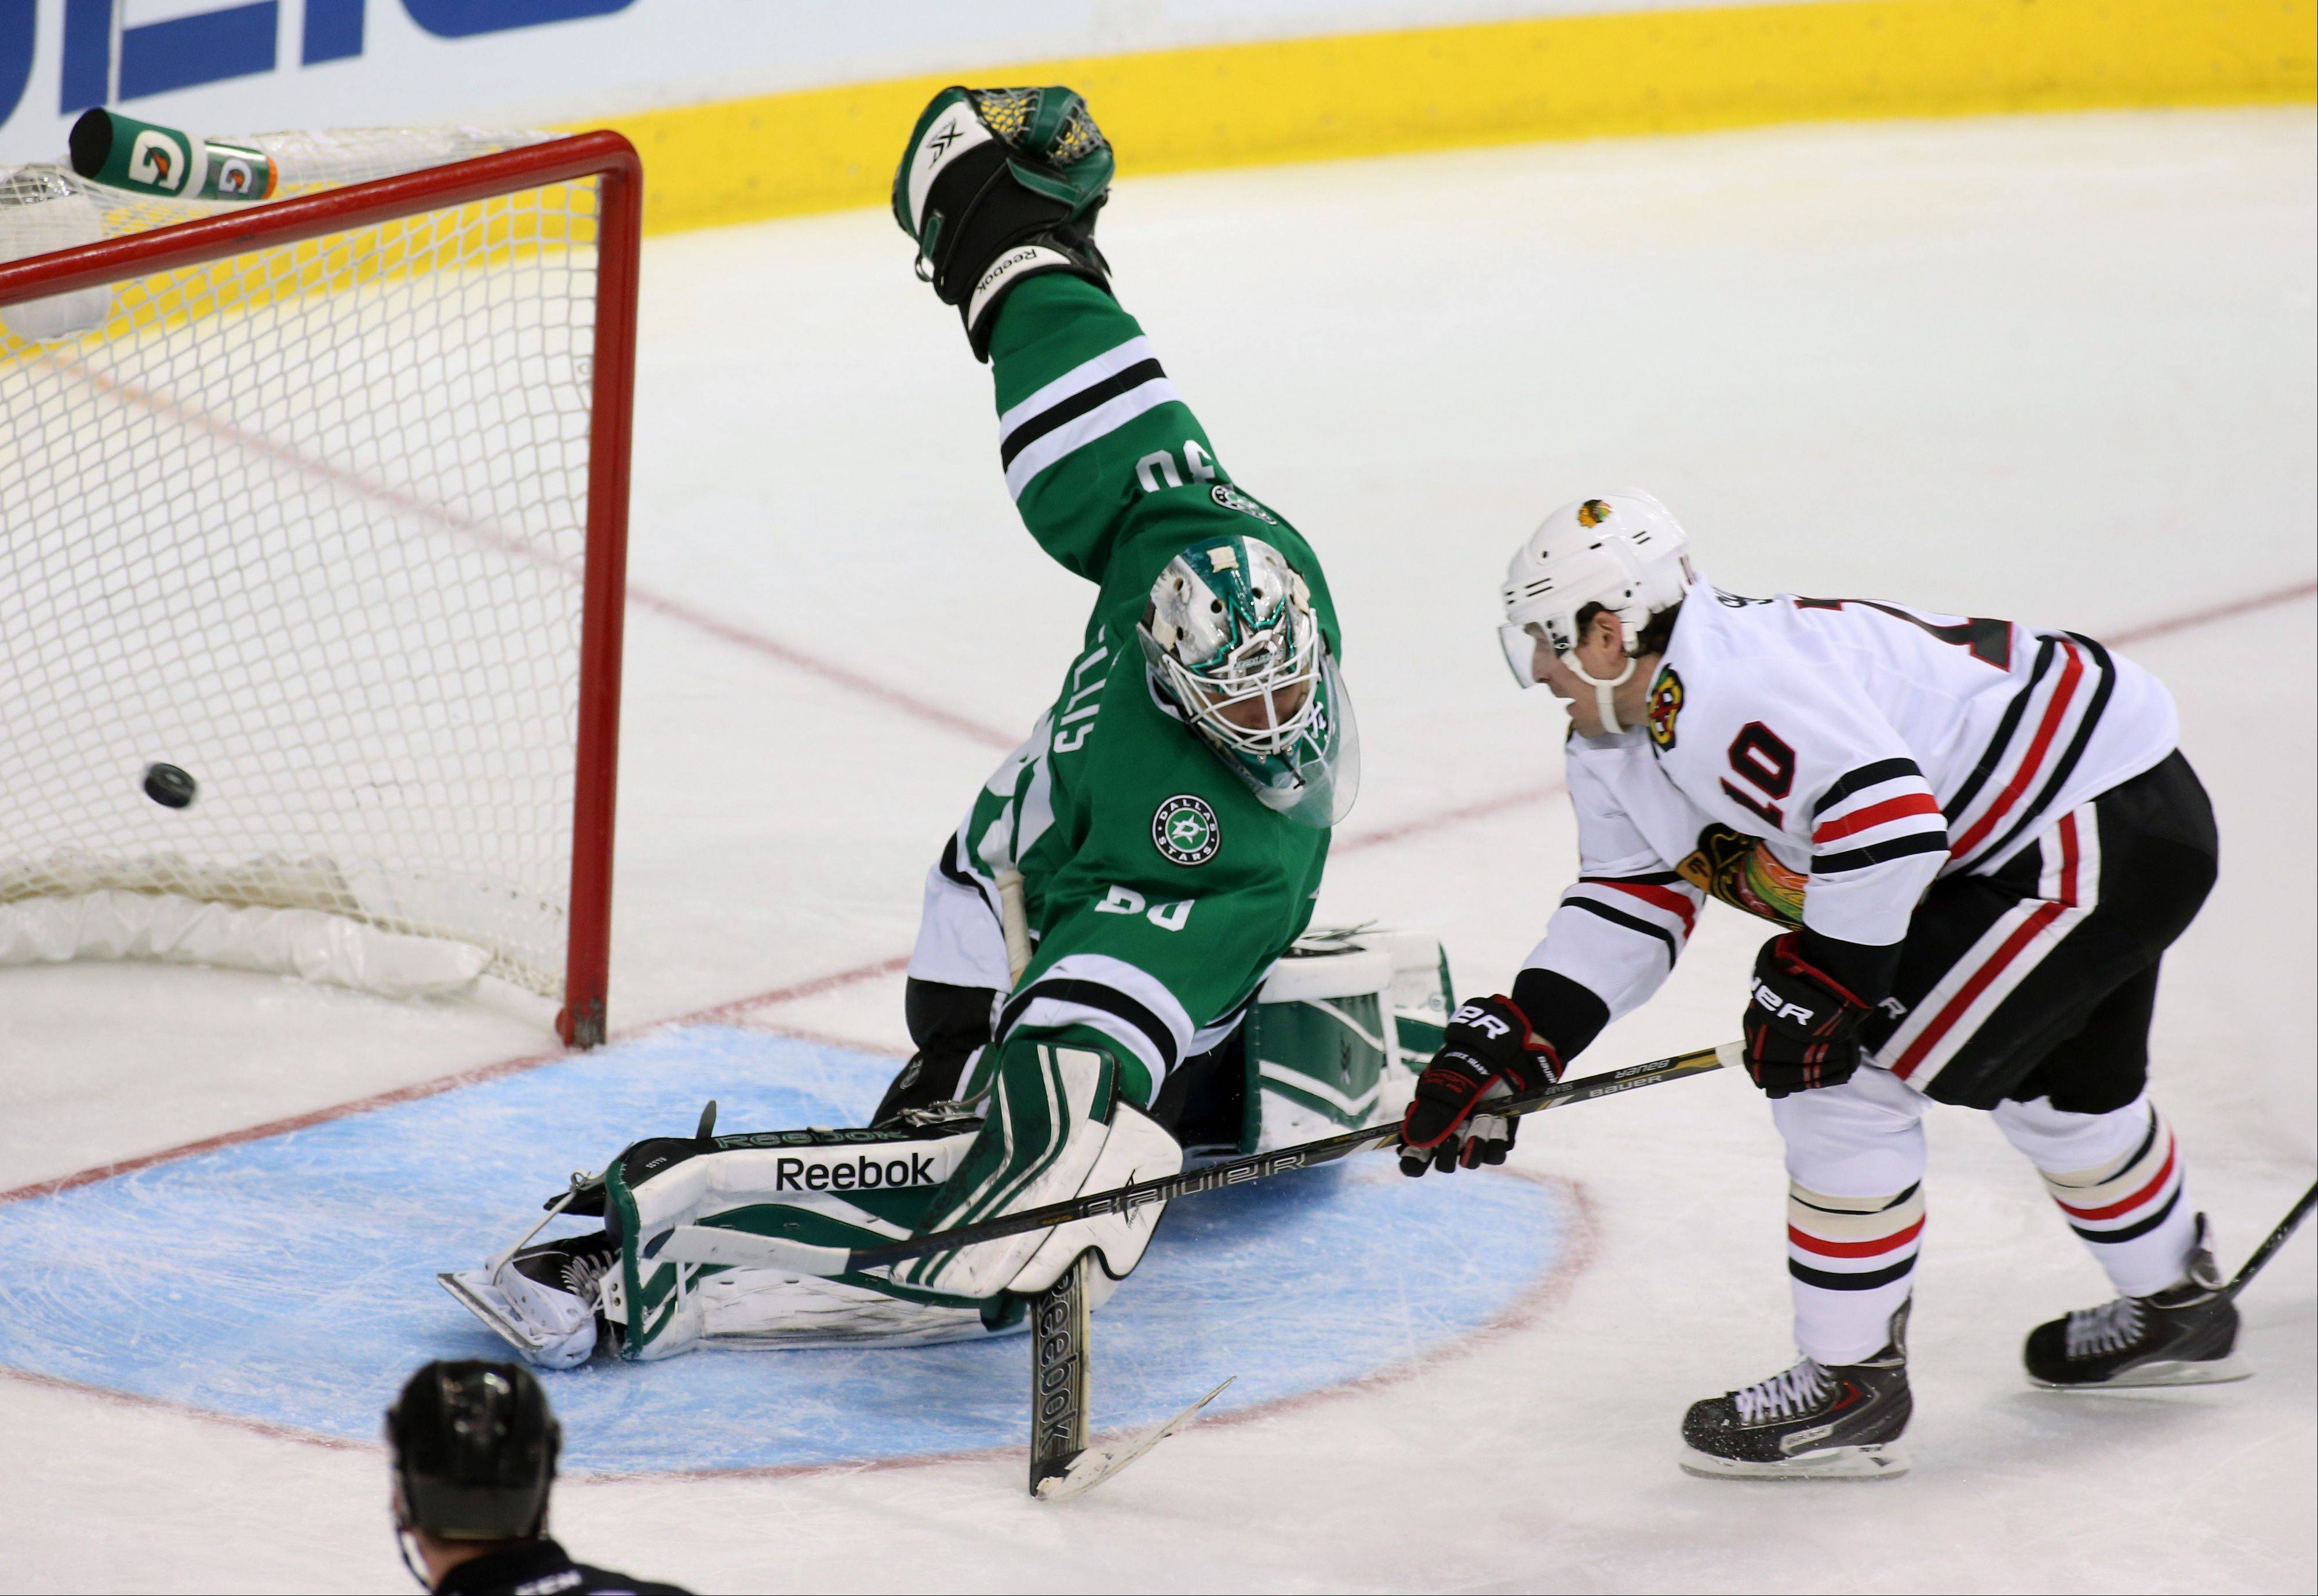 Patrick Sharp scores on Stars goalie Dan Ellis for 1 of his 2 goals in the second period Tuesday night.